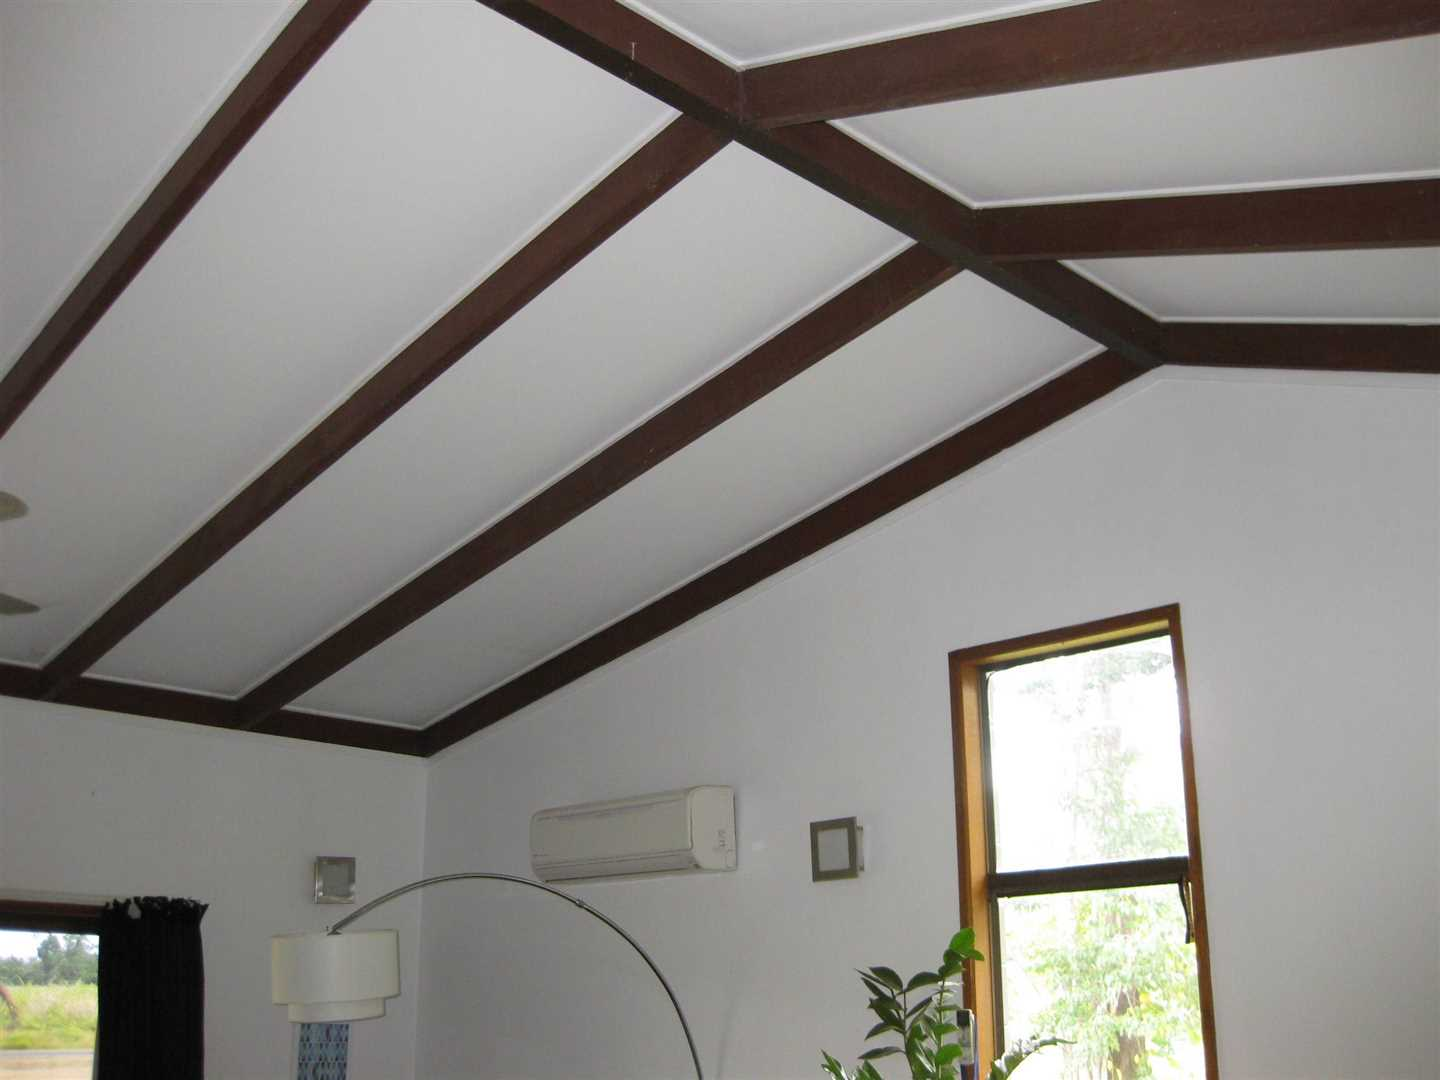 Inside view of part of home showing part of high ceiling